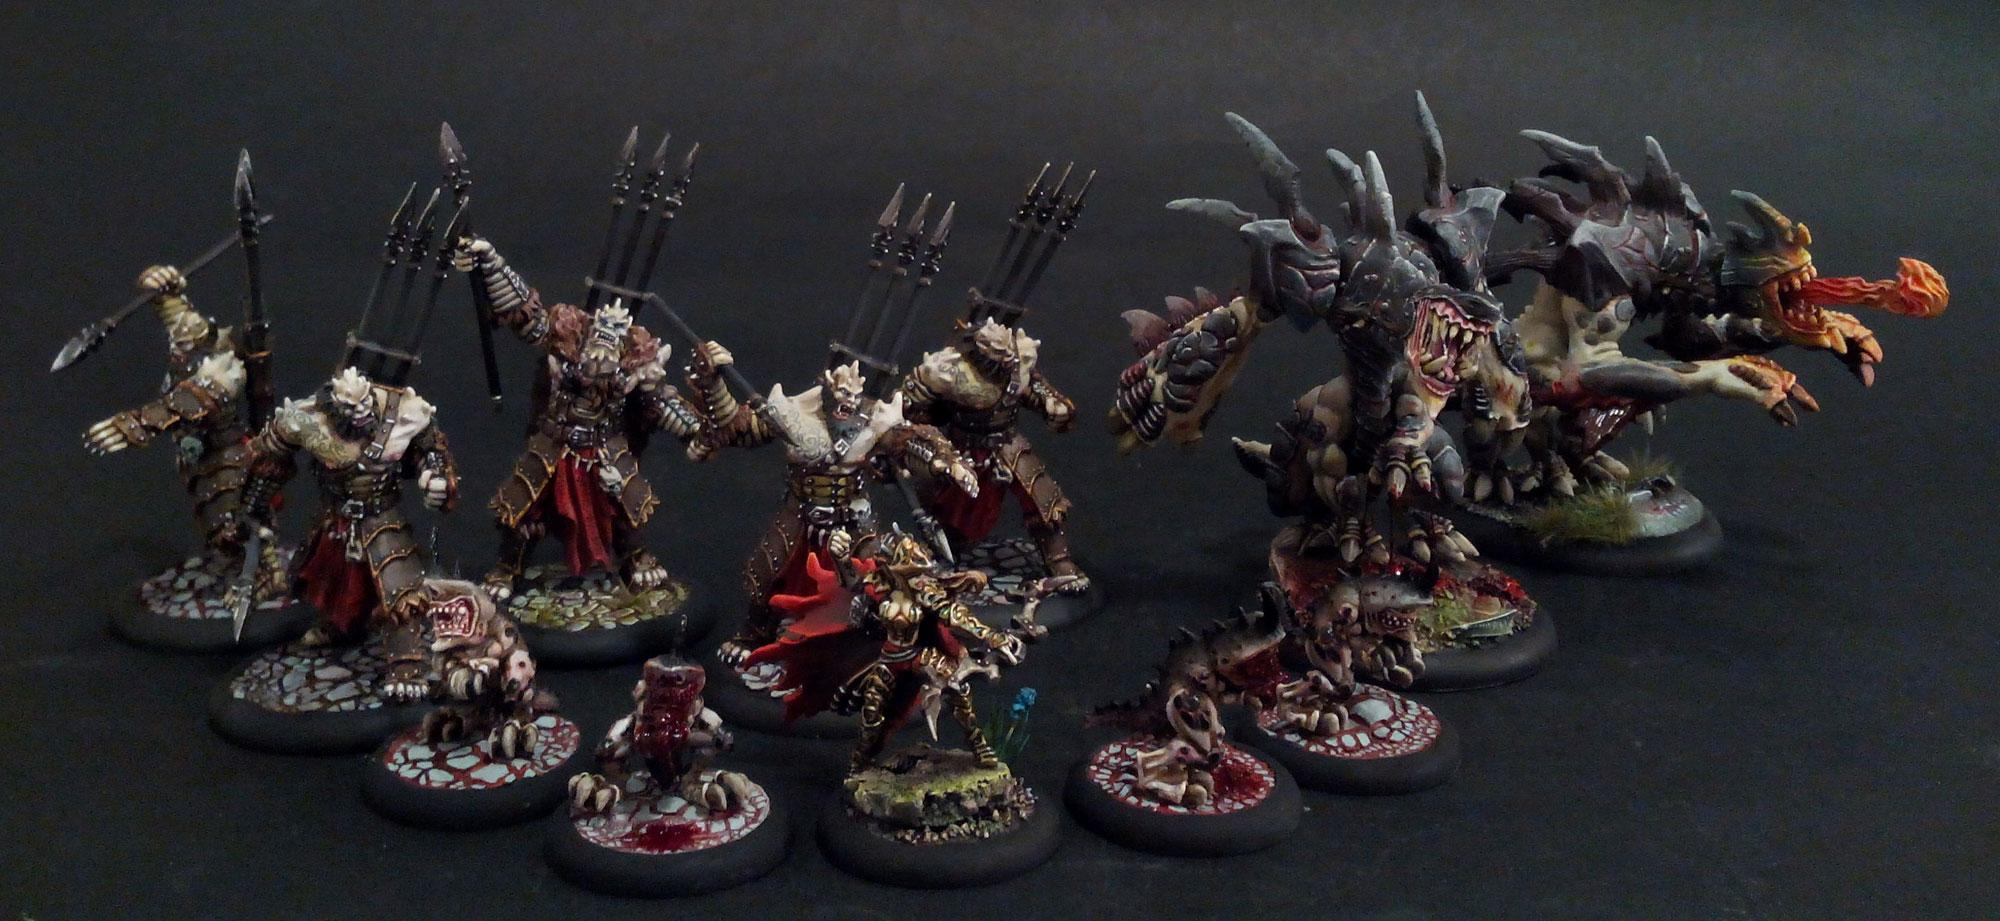 Blood, Hordes, Legion Of Everblight, Object Source Lighting, Warbeast, Warmachine